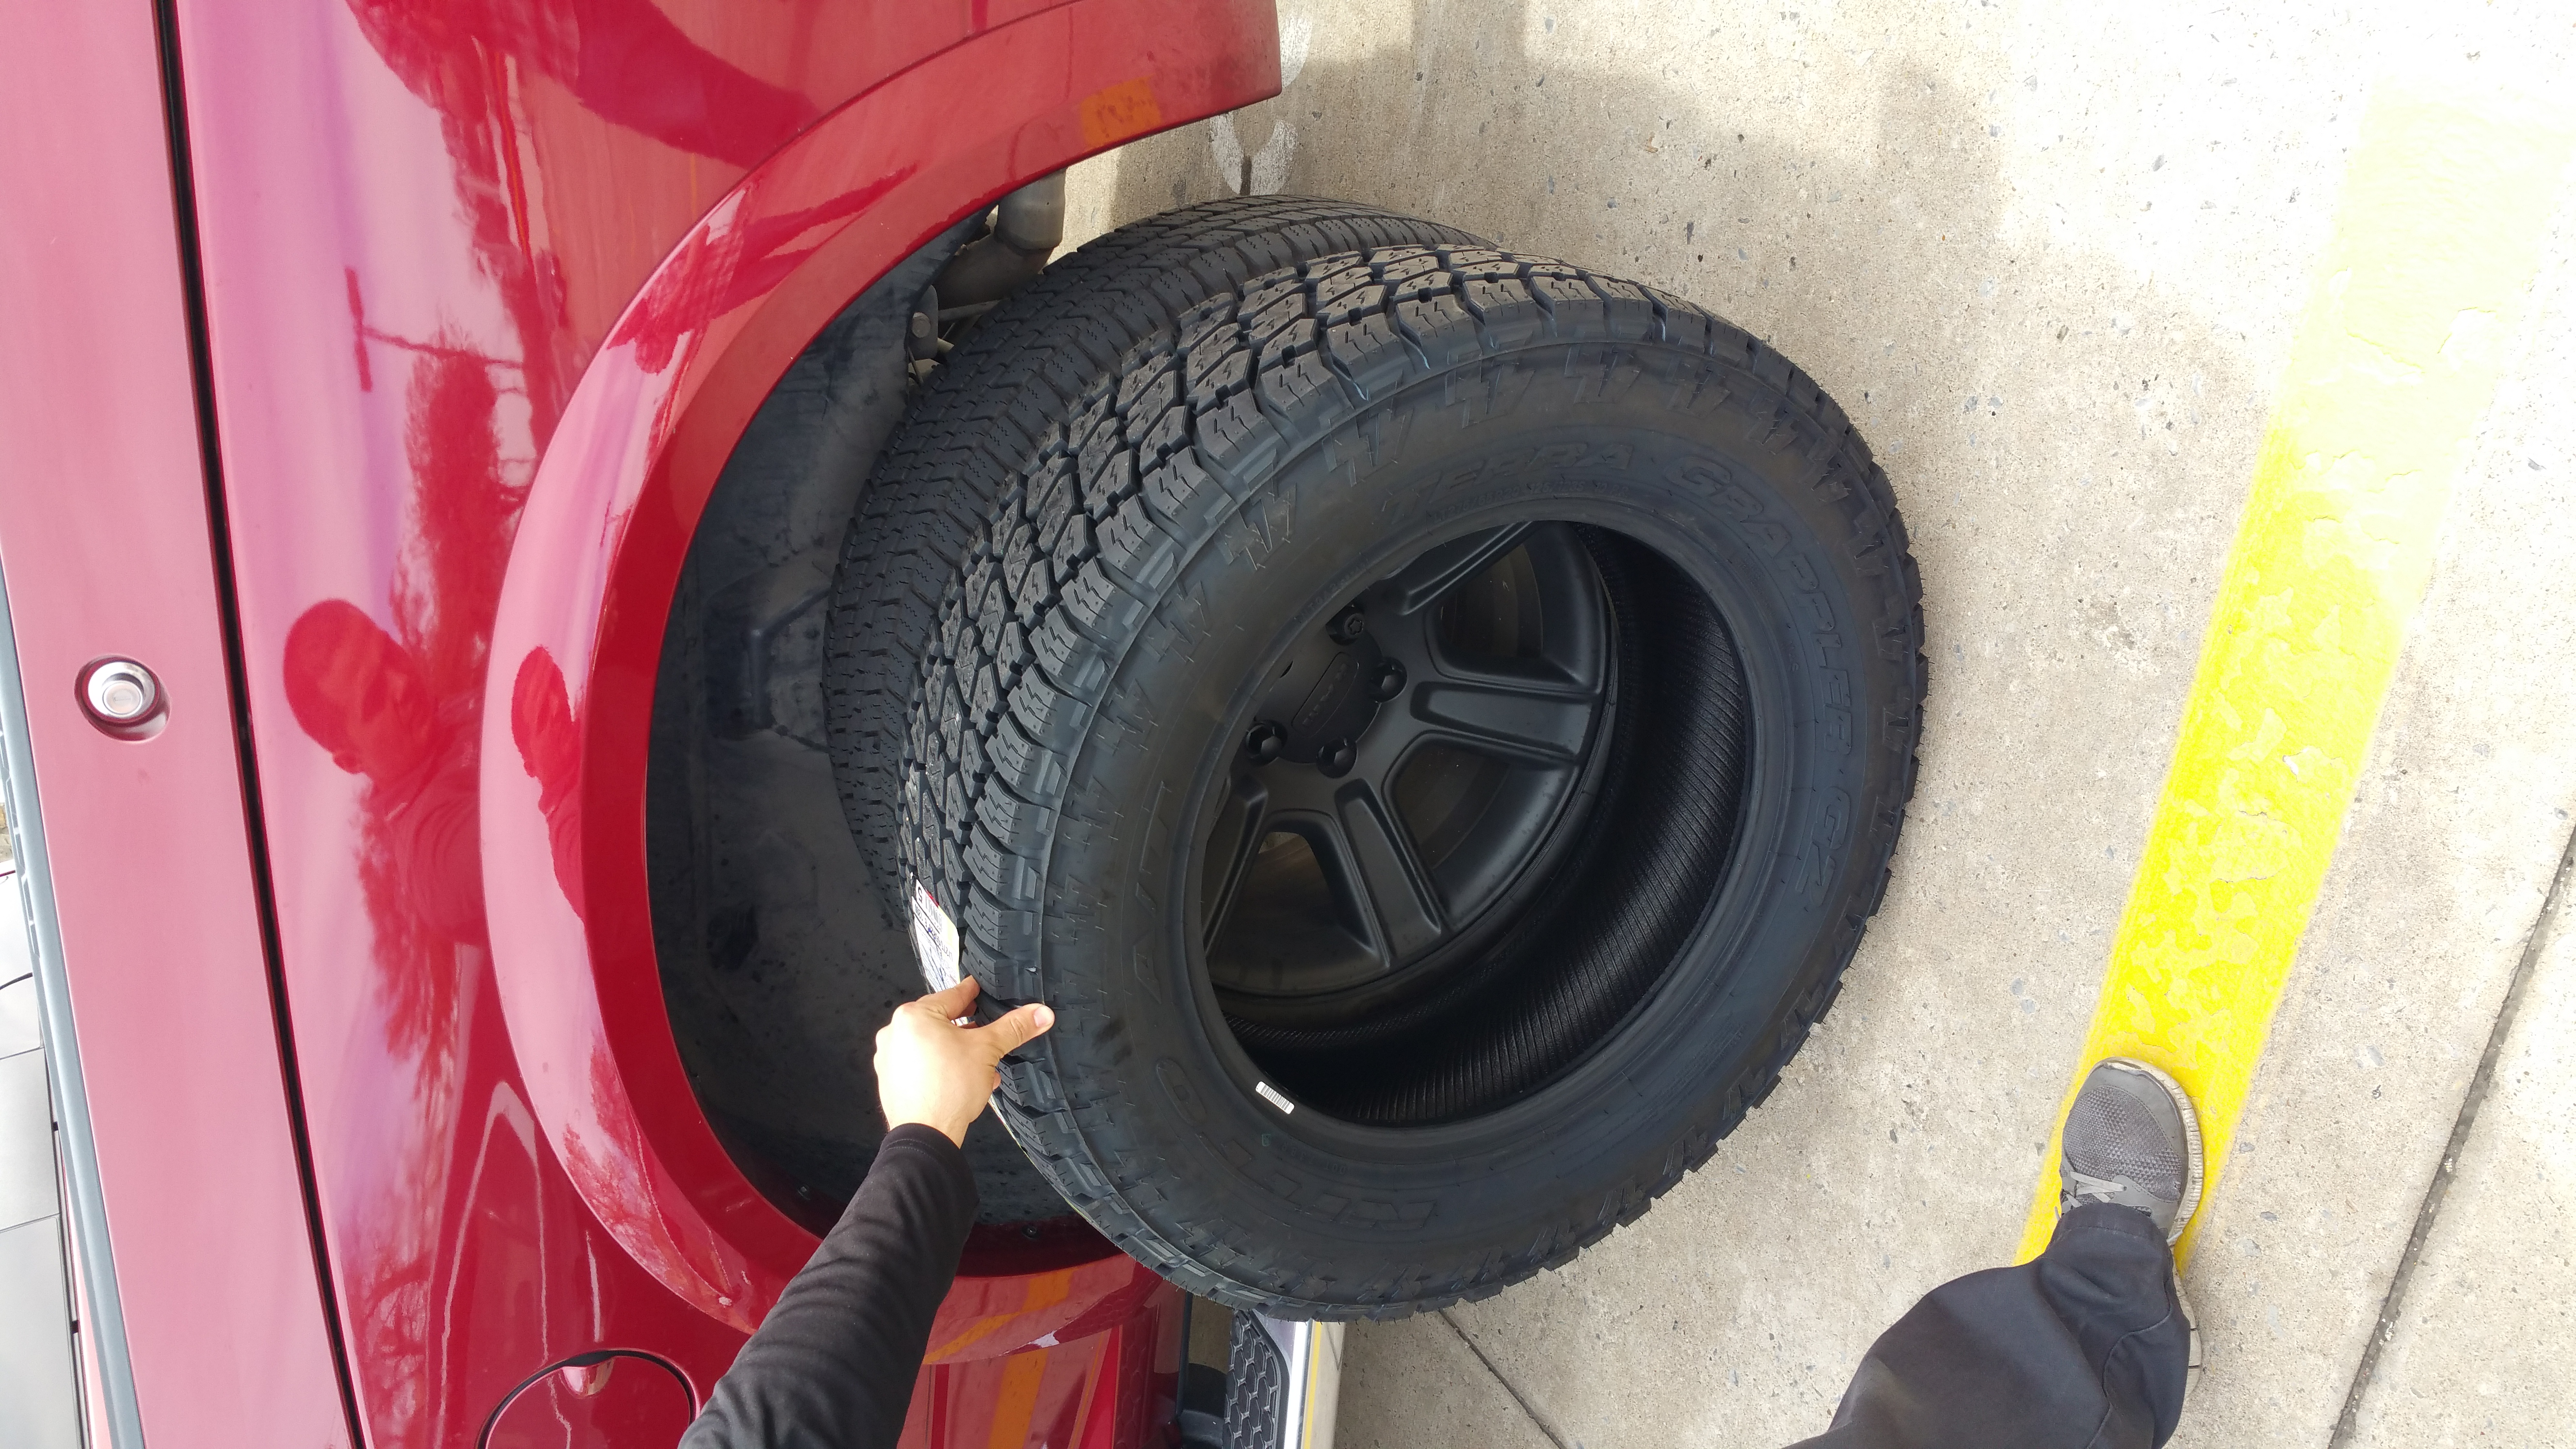 34 Inch Tires On Stock Truck With Air Suspension